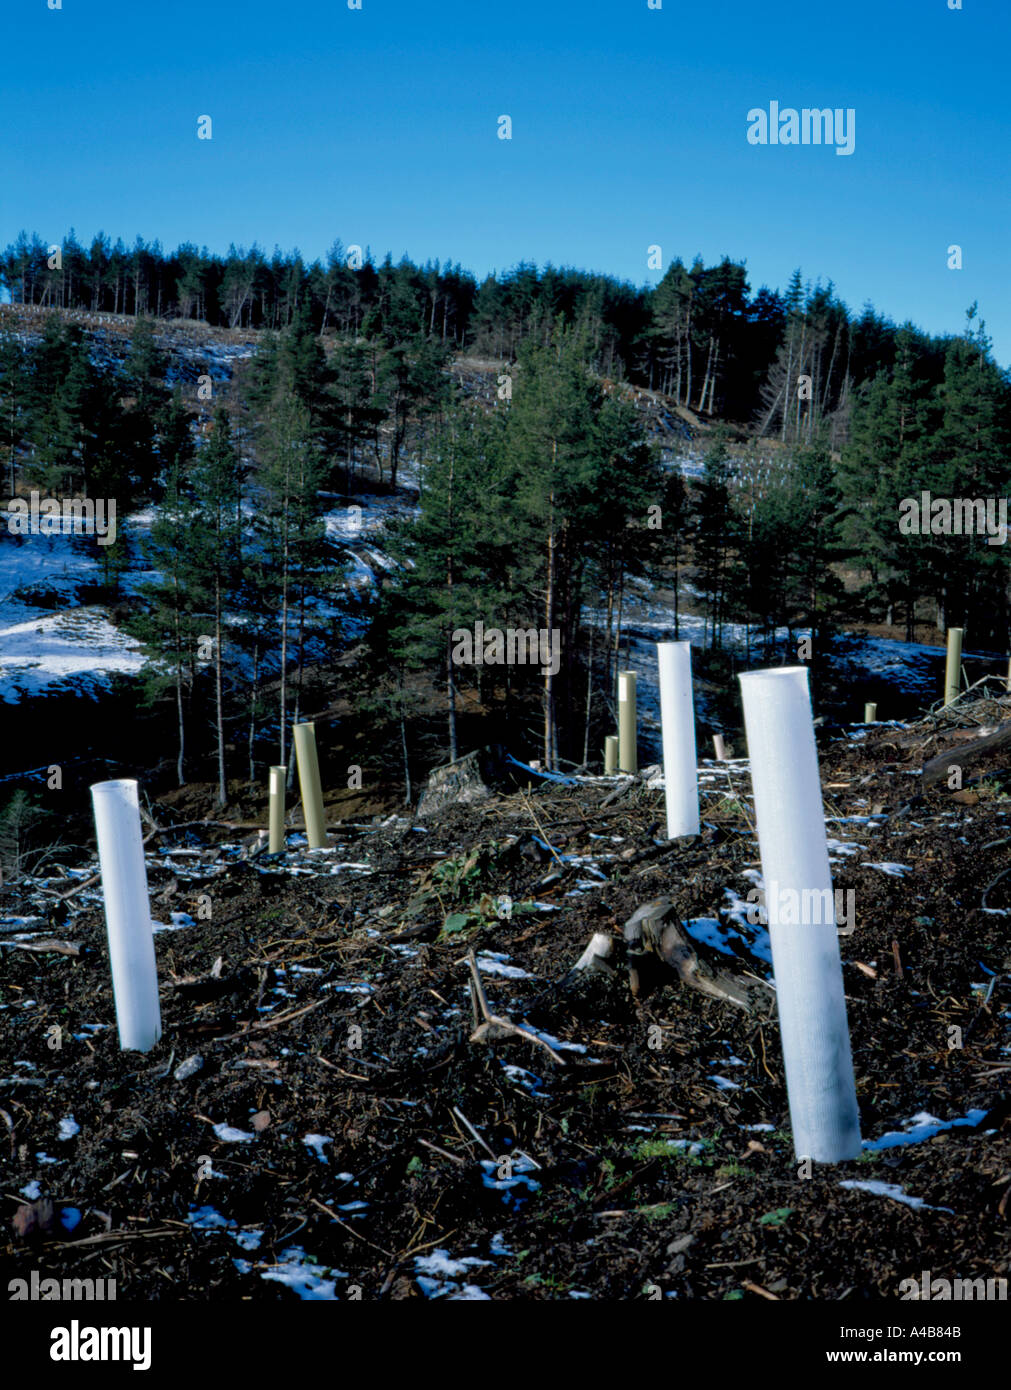 Newly planted deciduous trees in plastic tubes with middle aged conifers beyond, Blanchland Moor near Hexham, Northumberland, UK - Stock Image